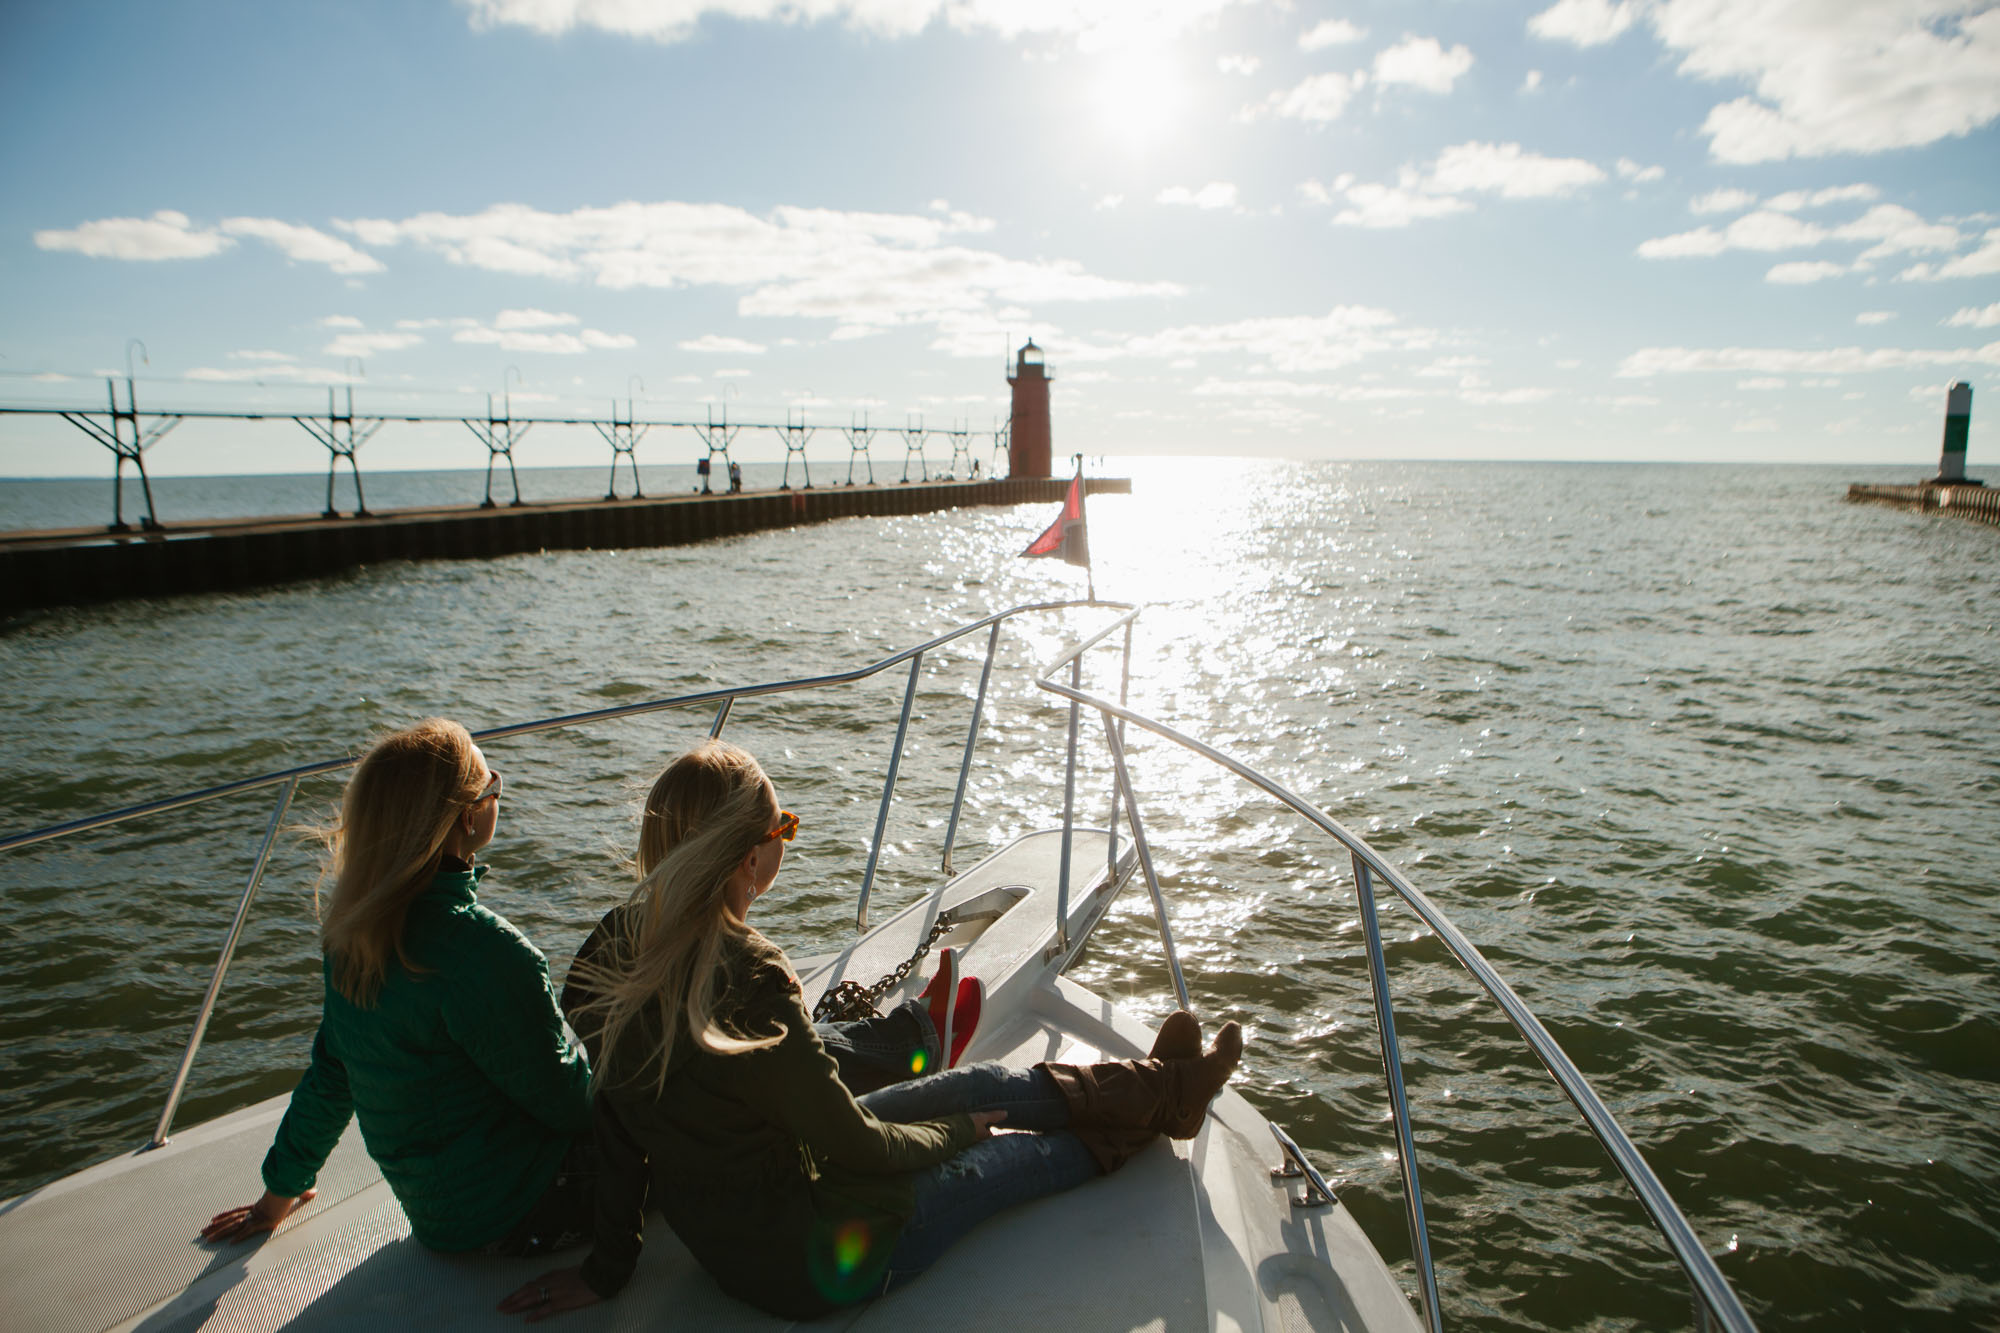 022_SouthHaven_3827